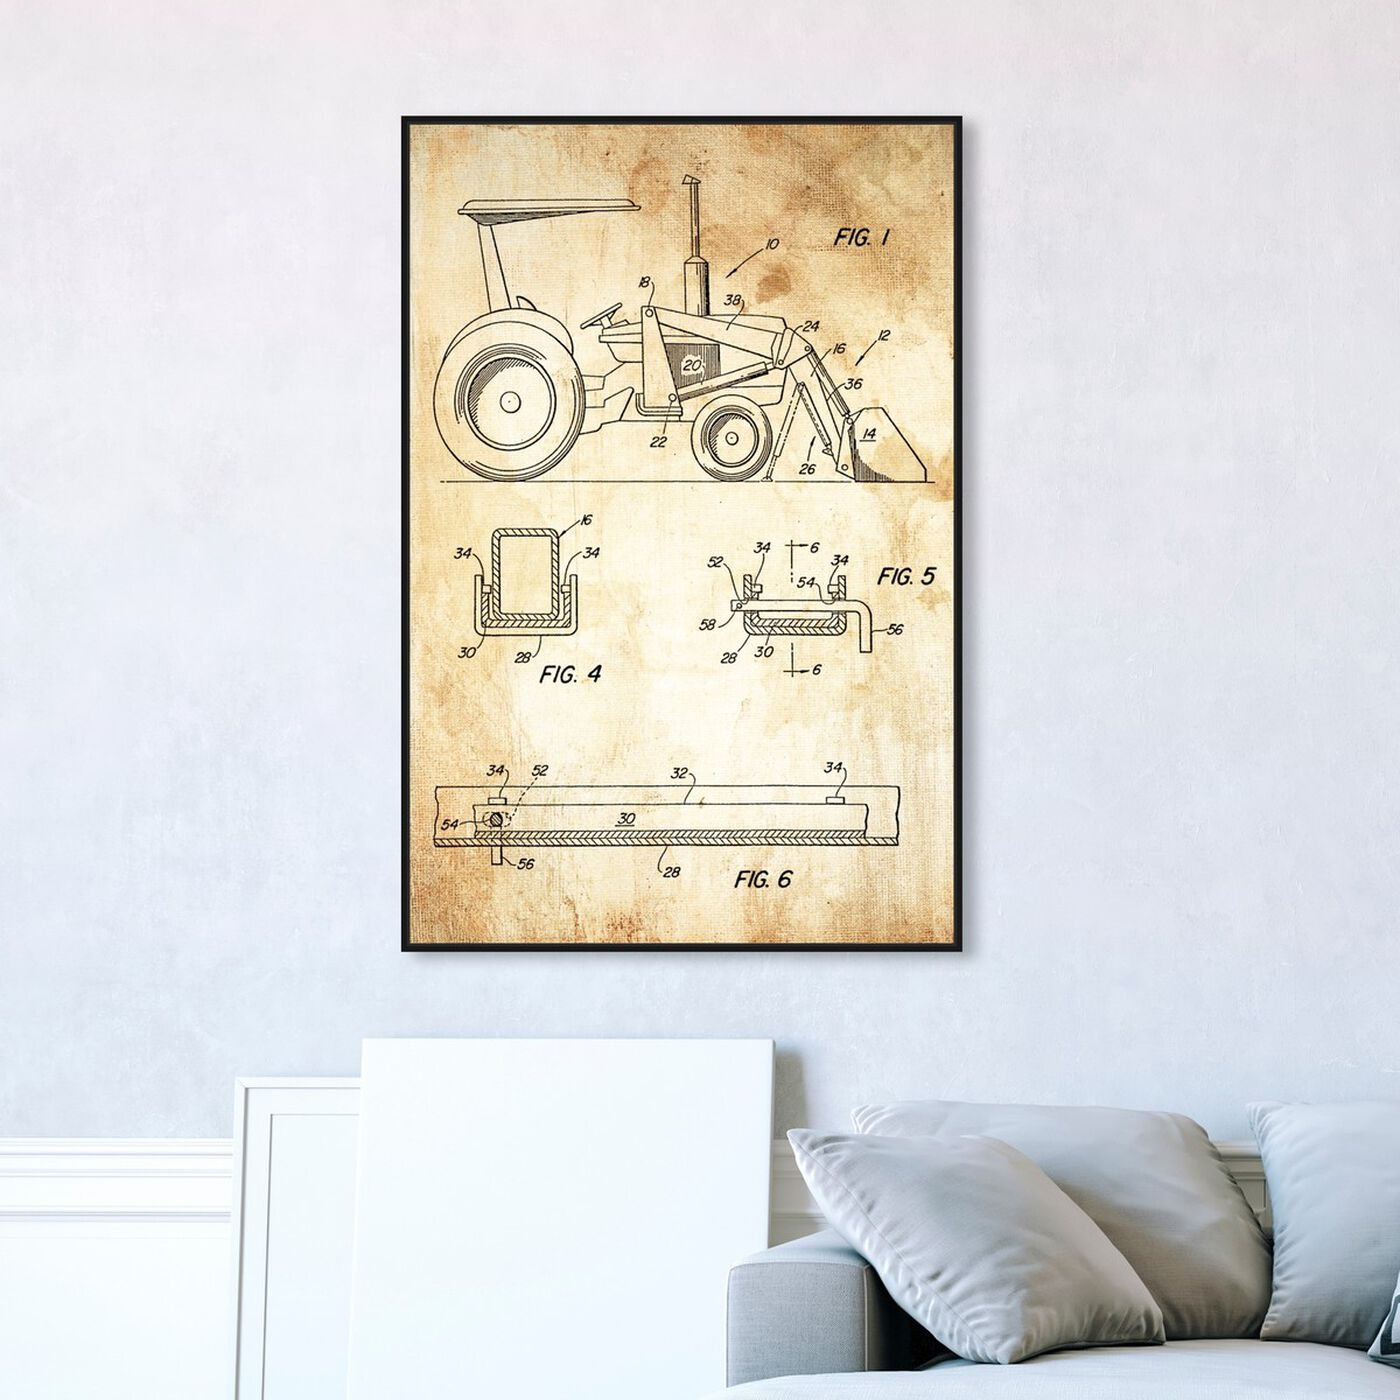 Hanging view of Traktor featuring transportation and trucks and busses art.